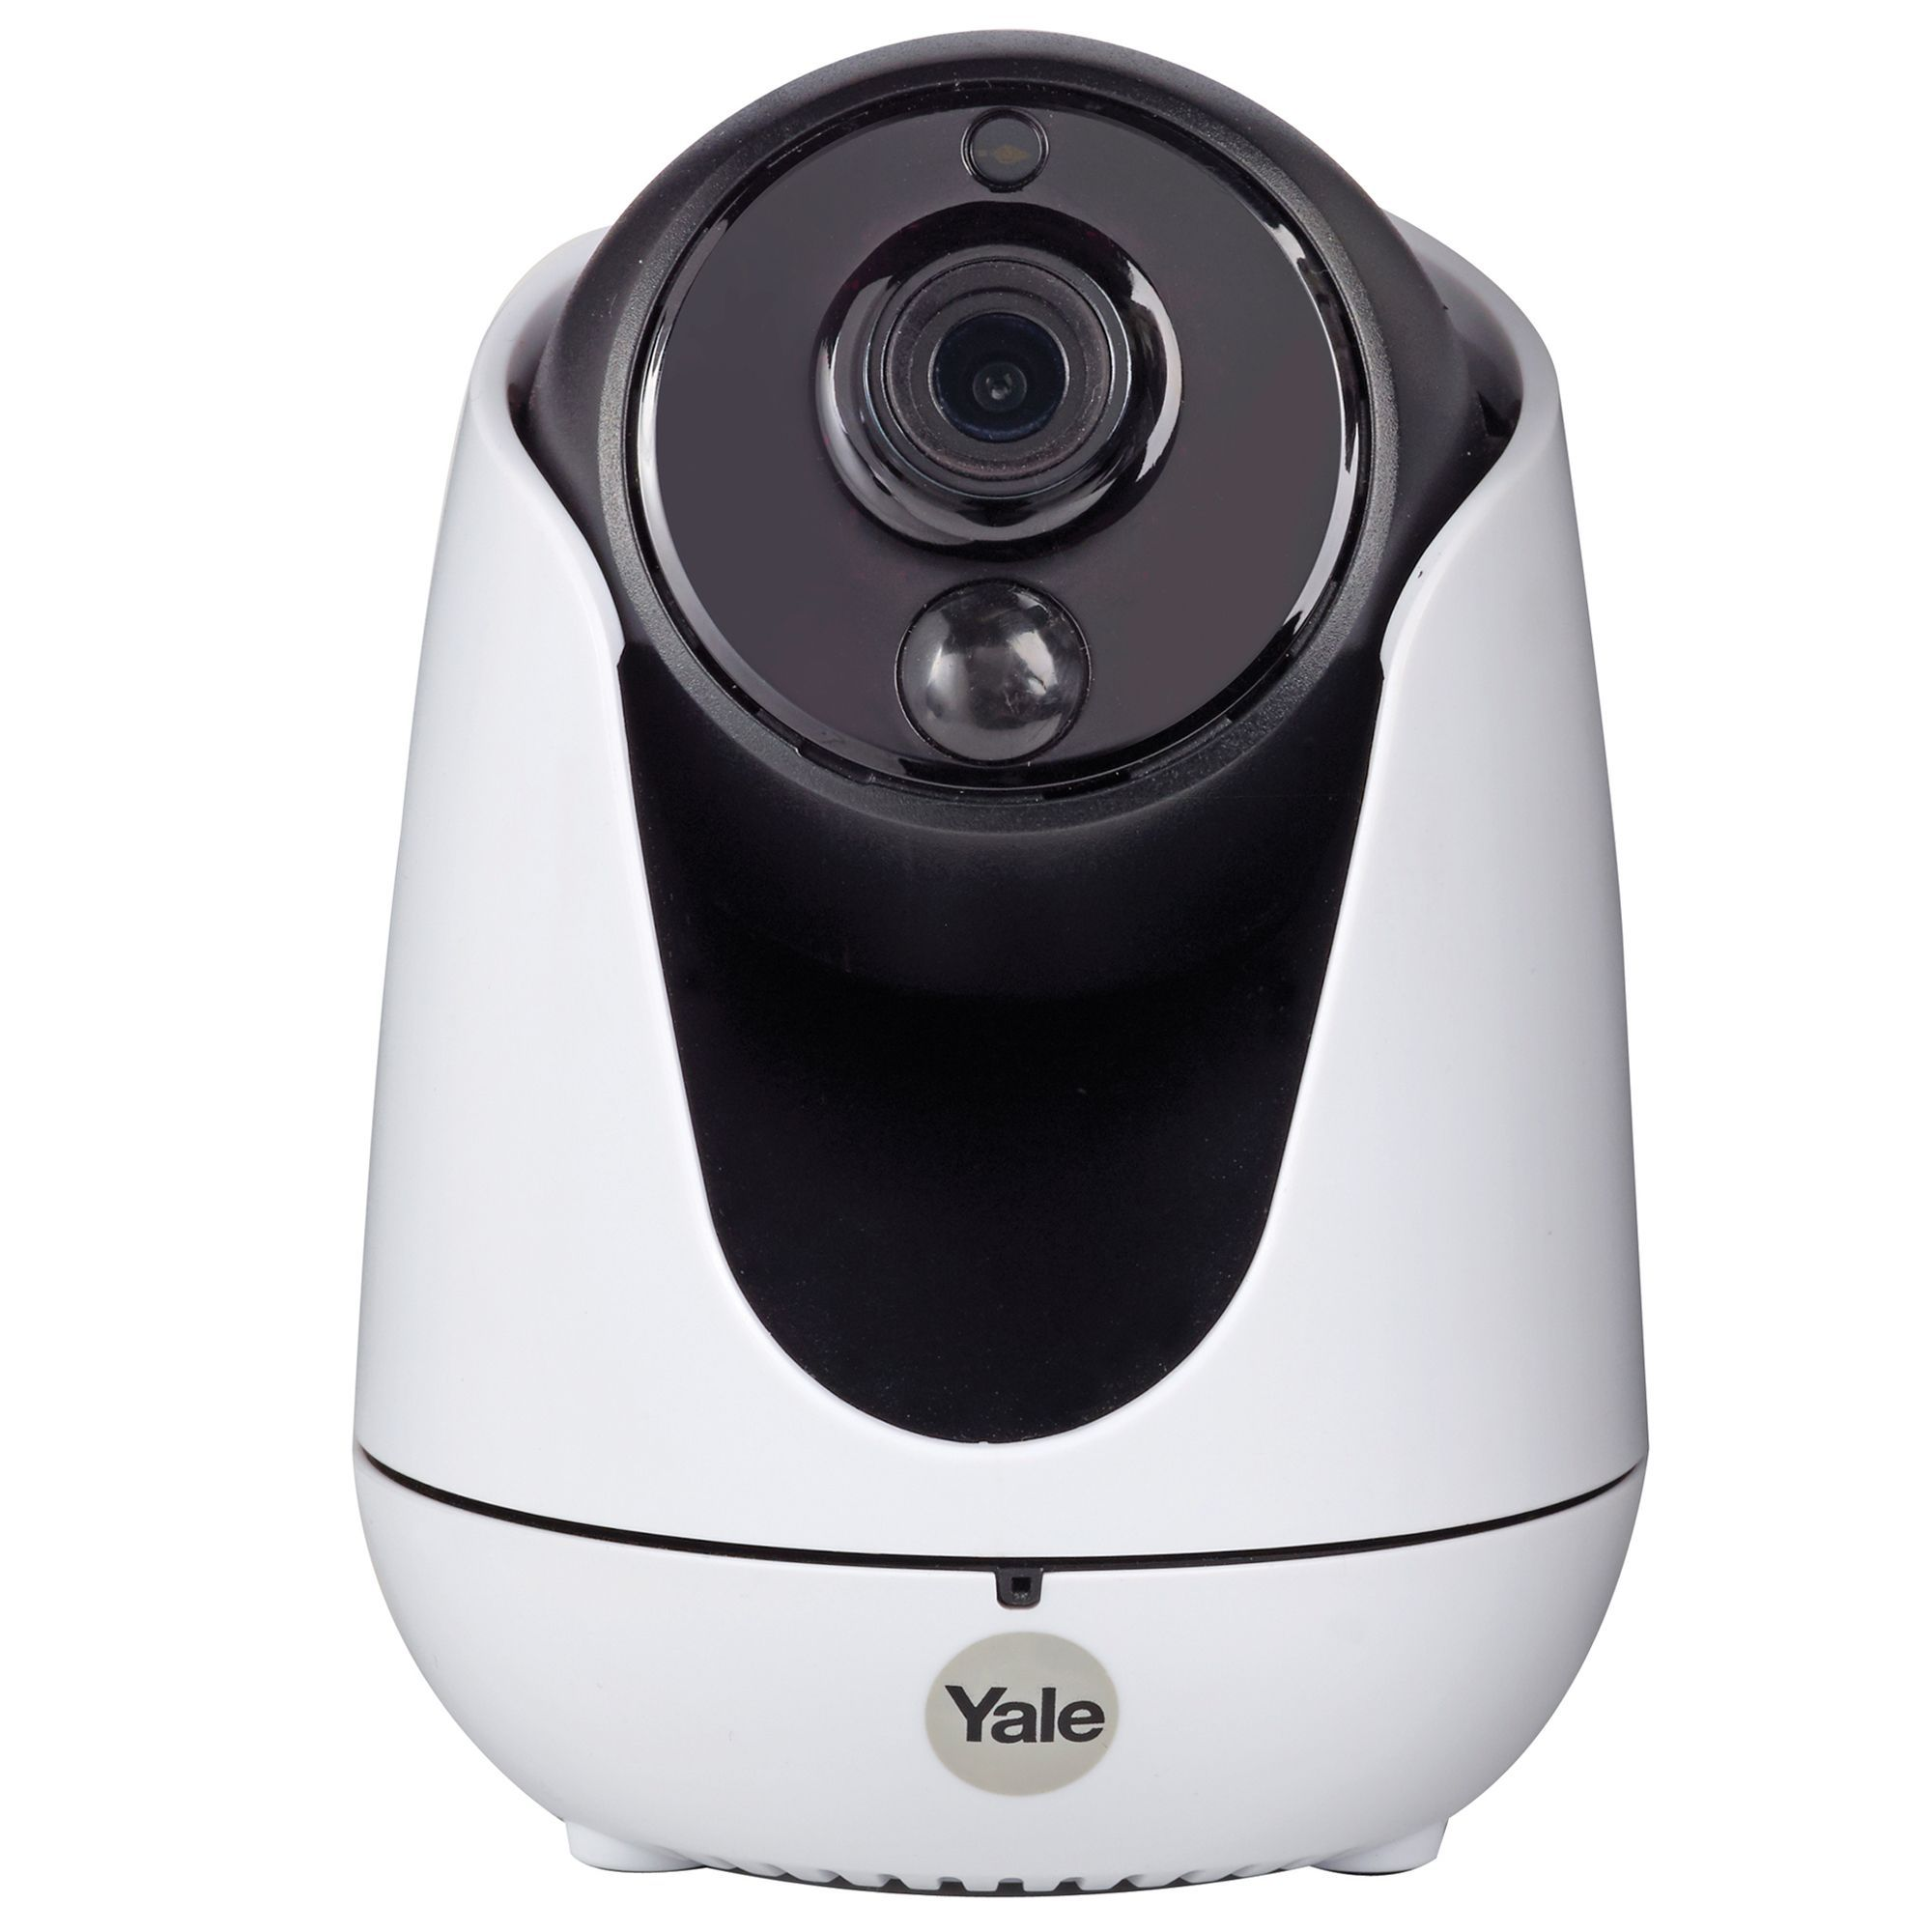 Yale Wipc 303w Home View Camera Departments Diy At B Amp Q